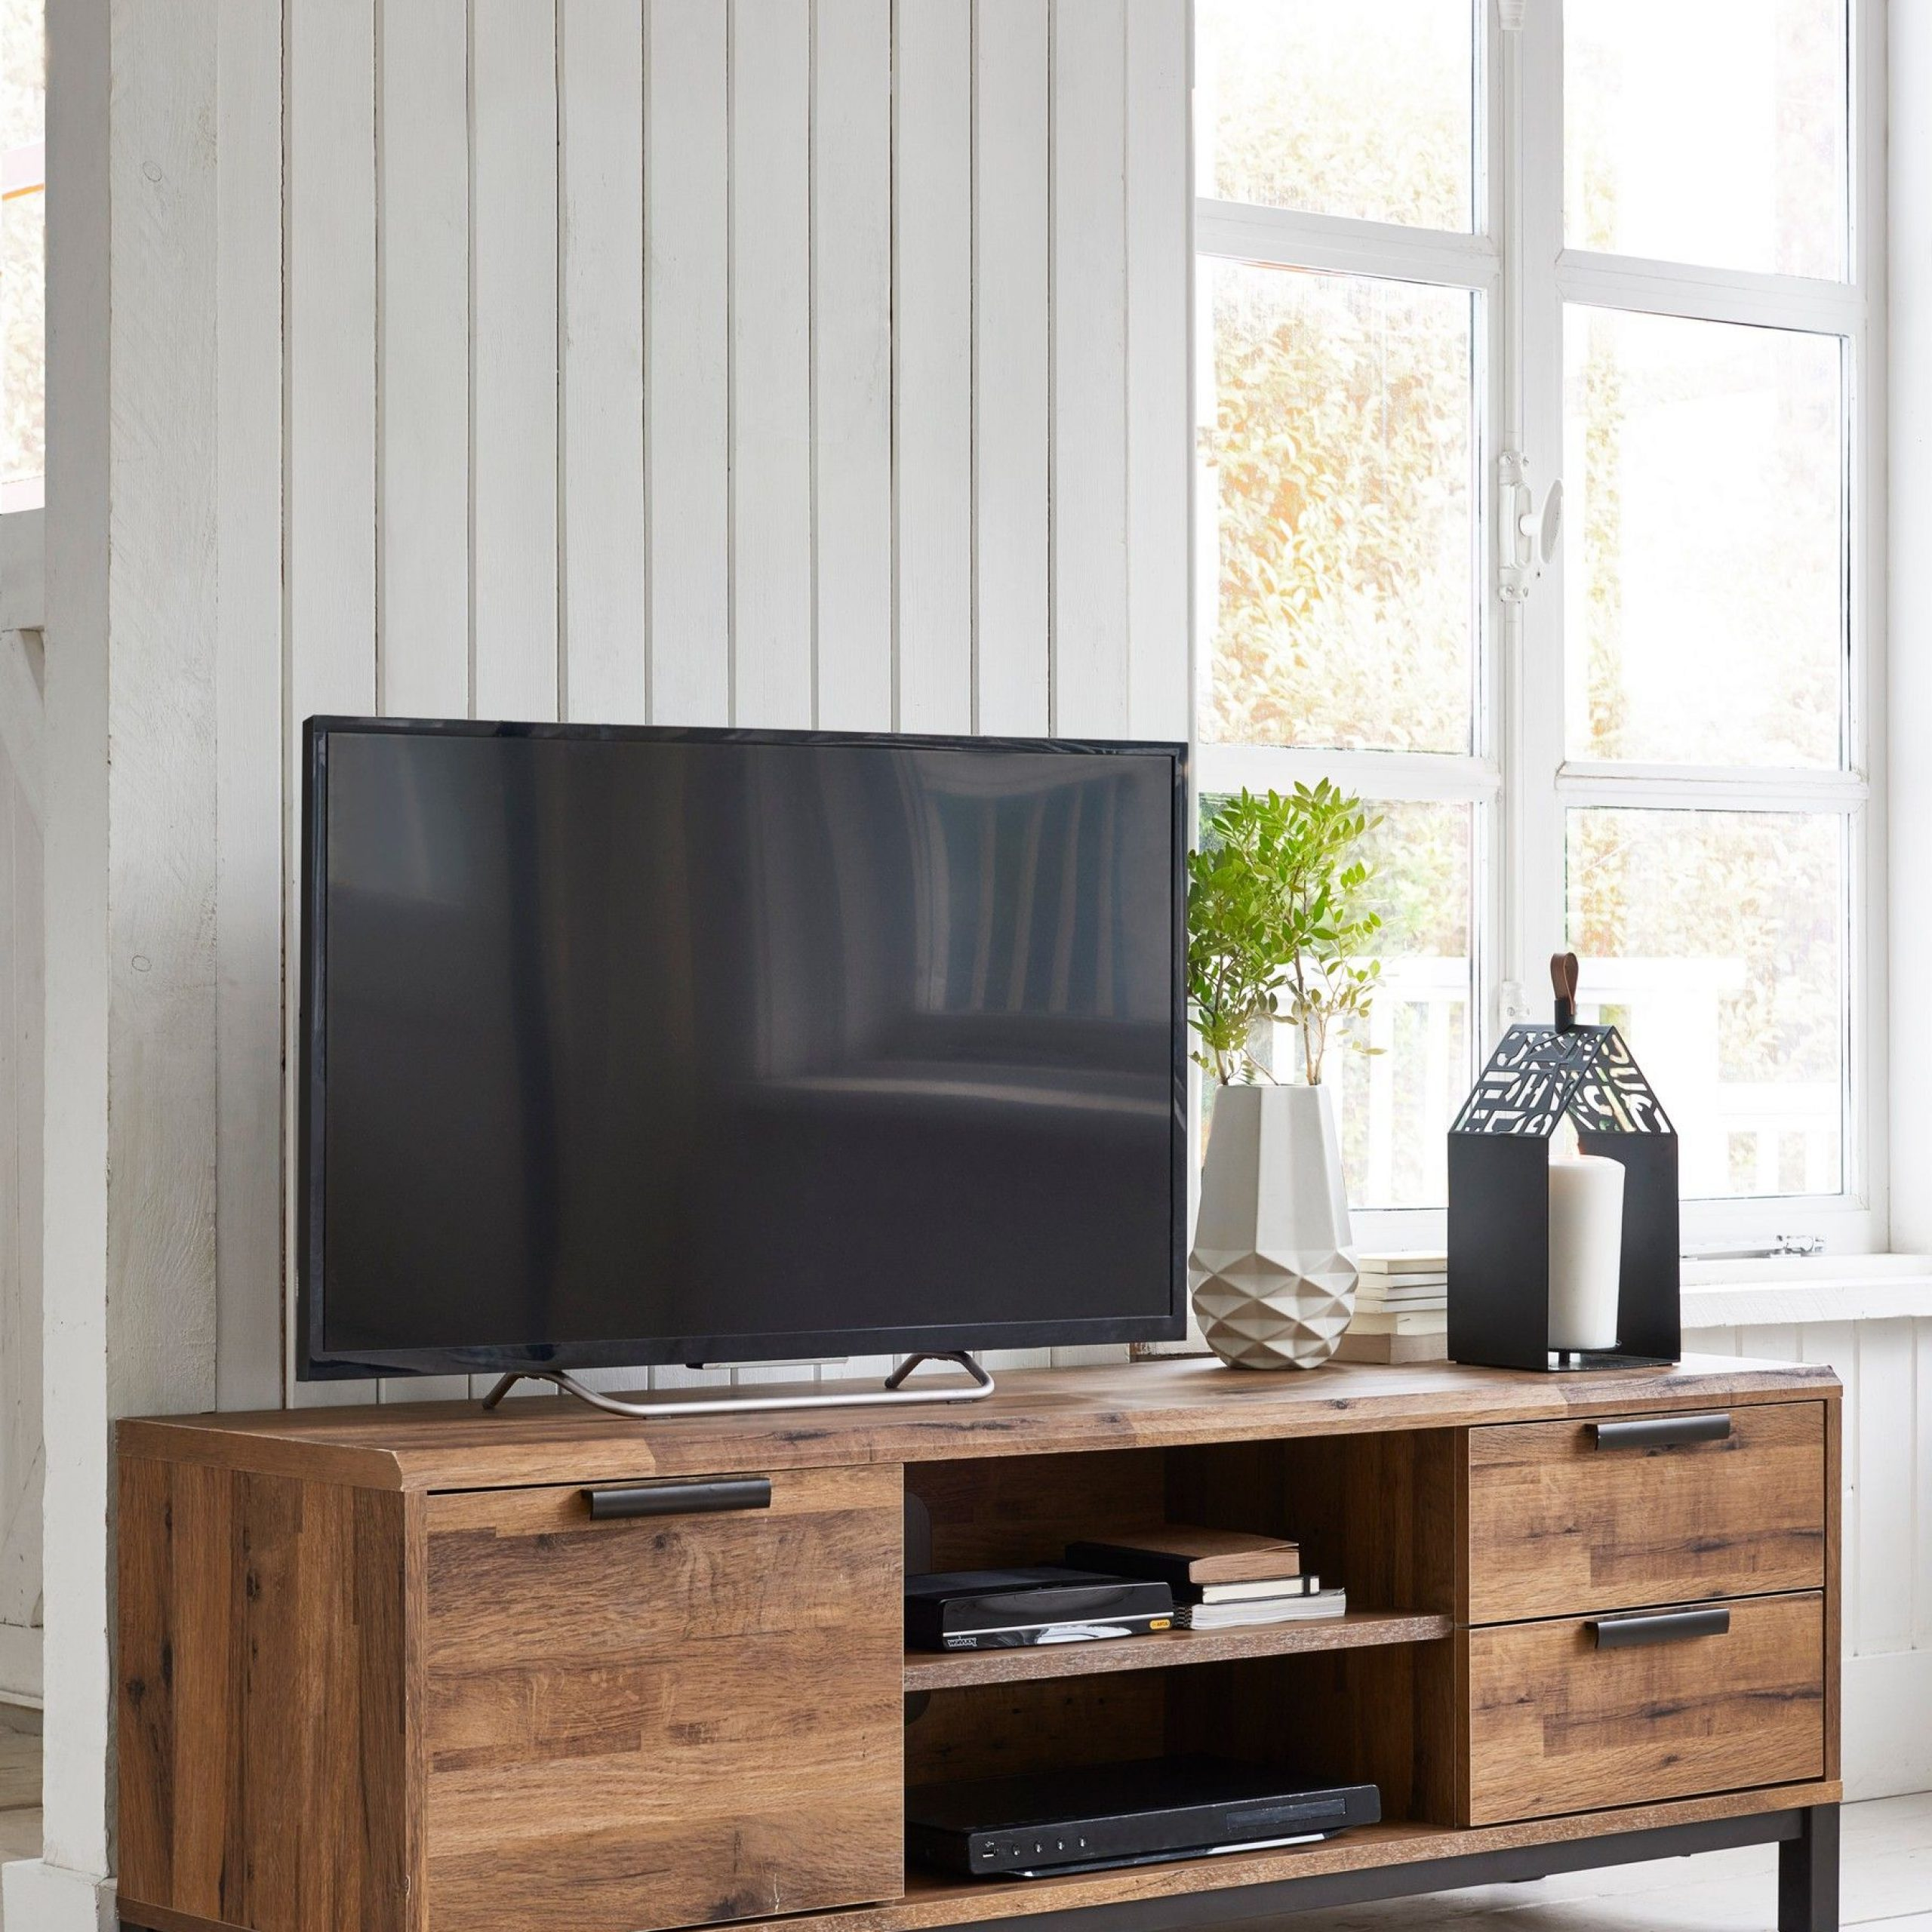 Bronx Wide Tv Stand | Living Room Furniture, Entertainment Within Oliver Wide Tv Stands (View 5 of 20)